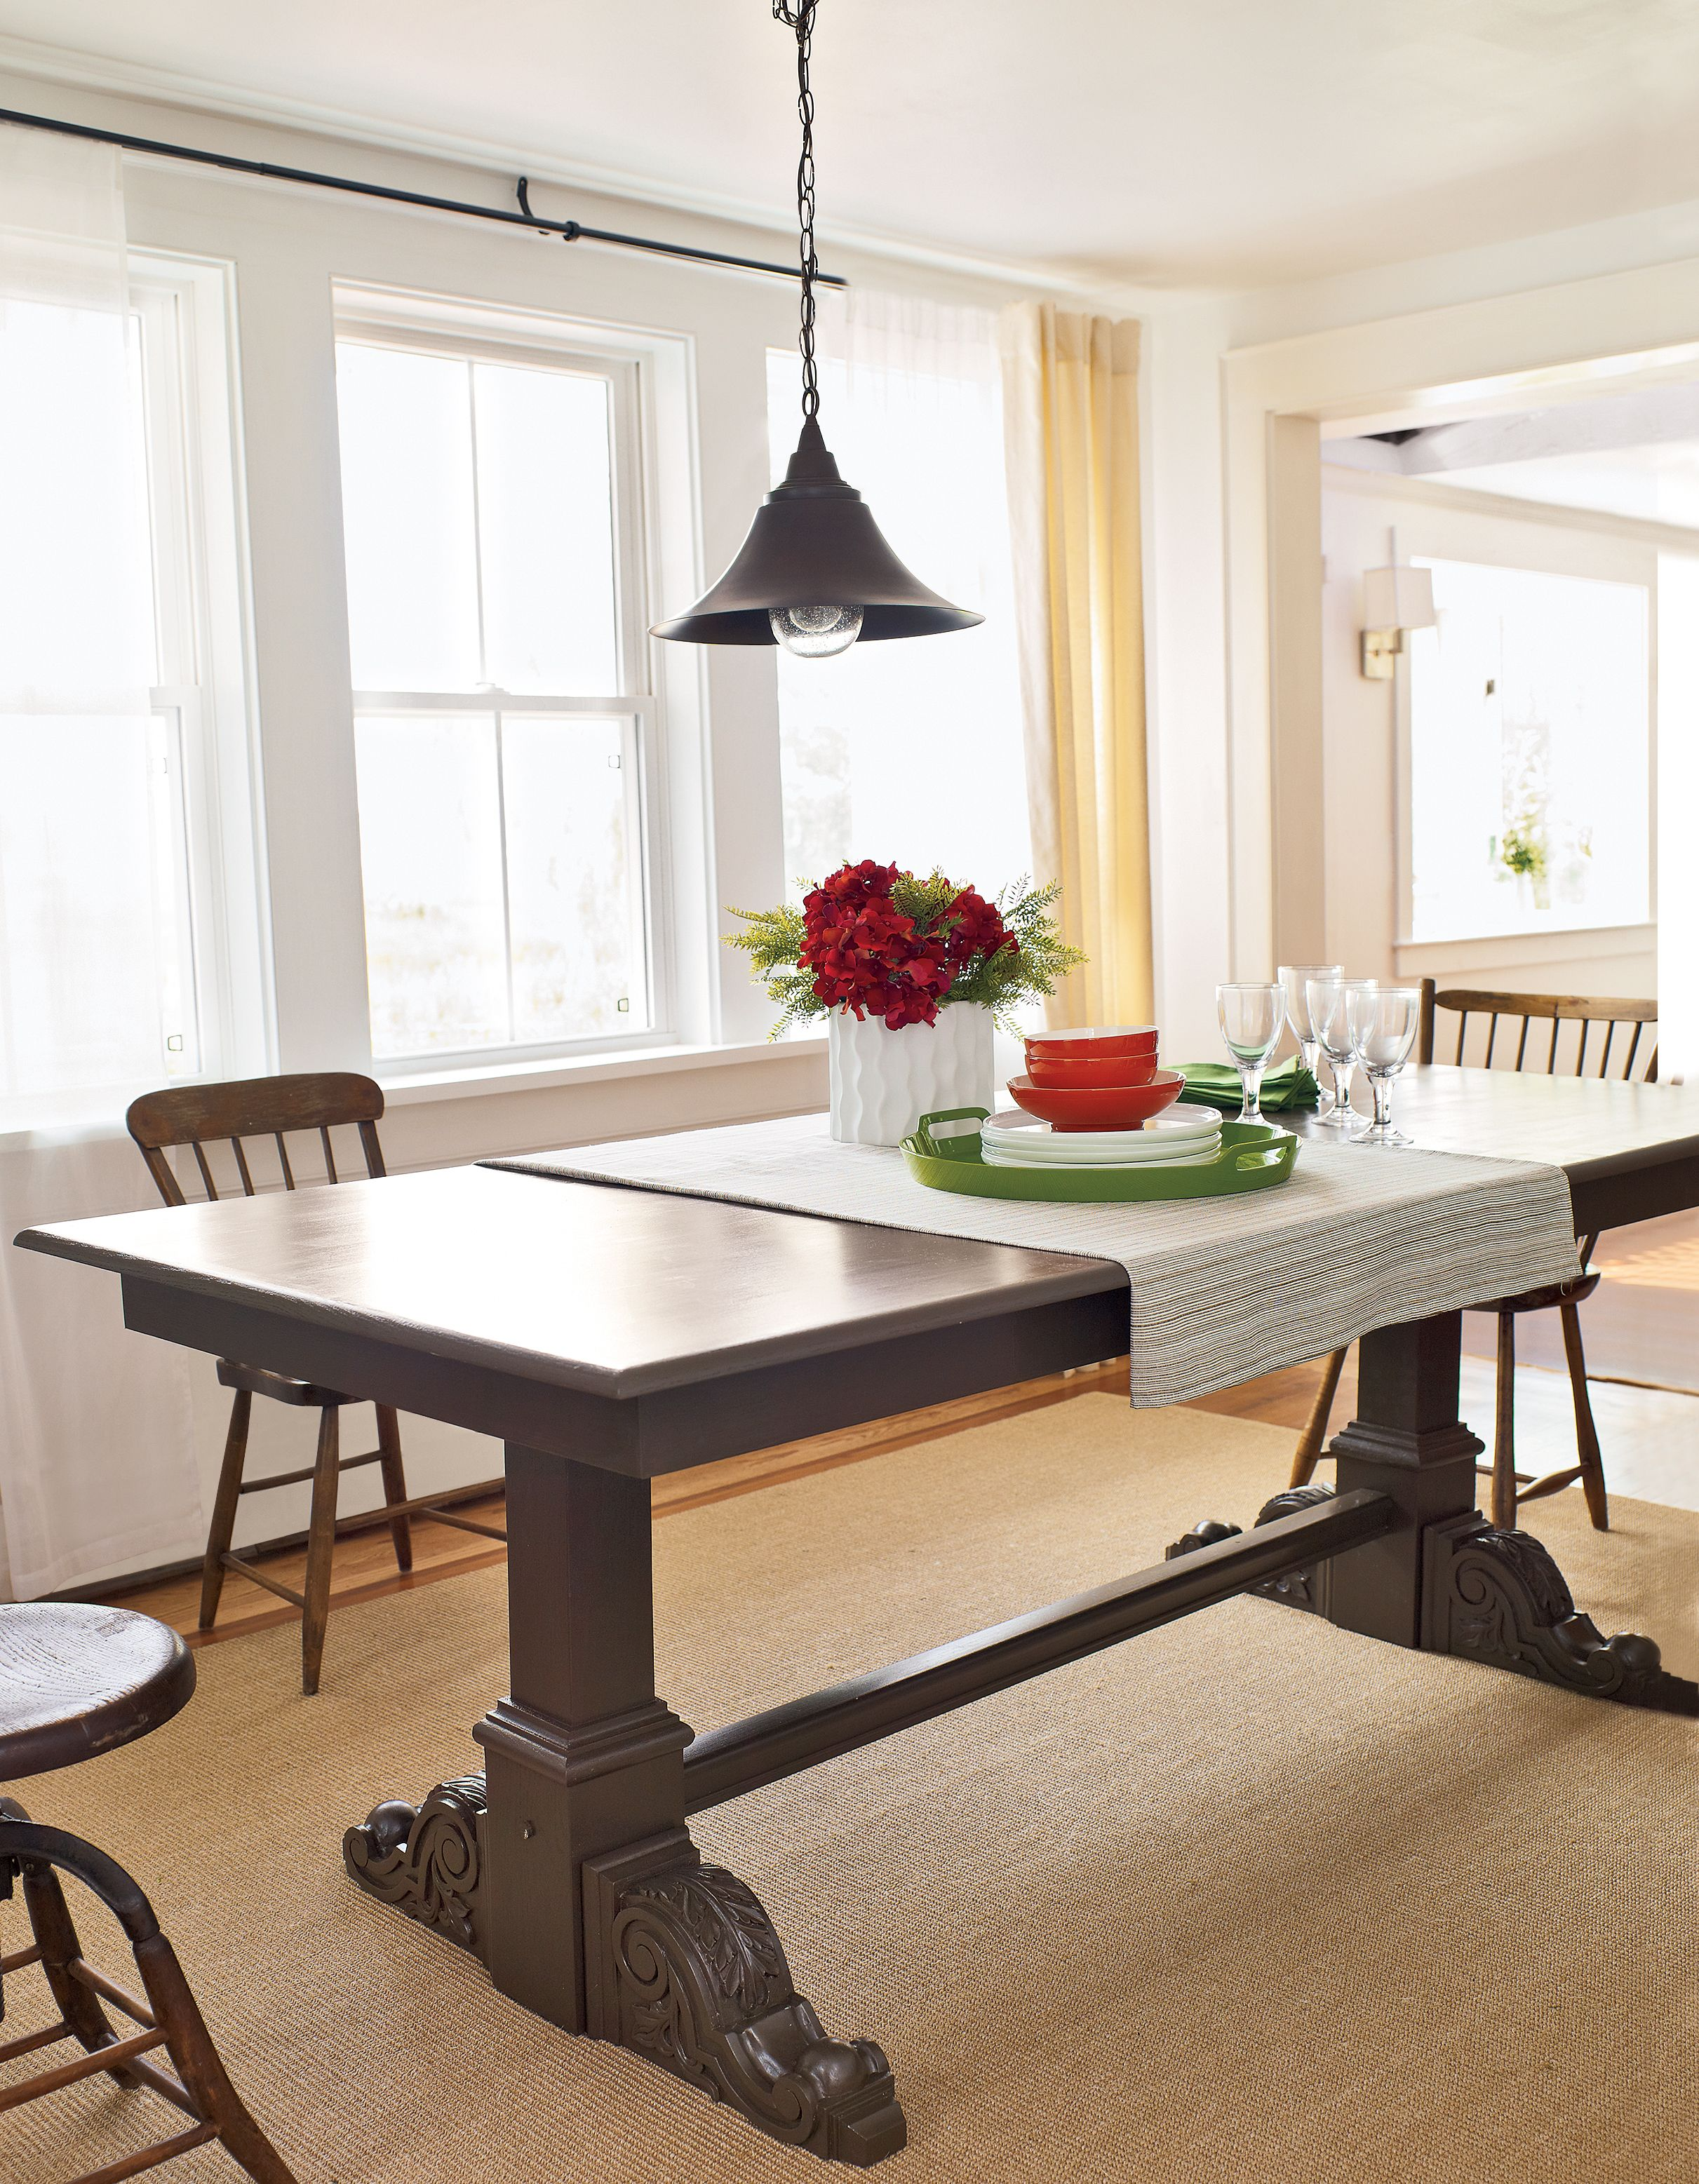 How To Make A Trestle Table Build A Table Trestle Table Table